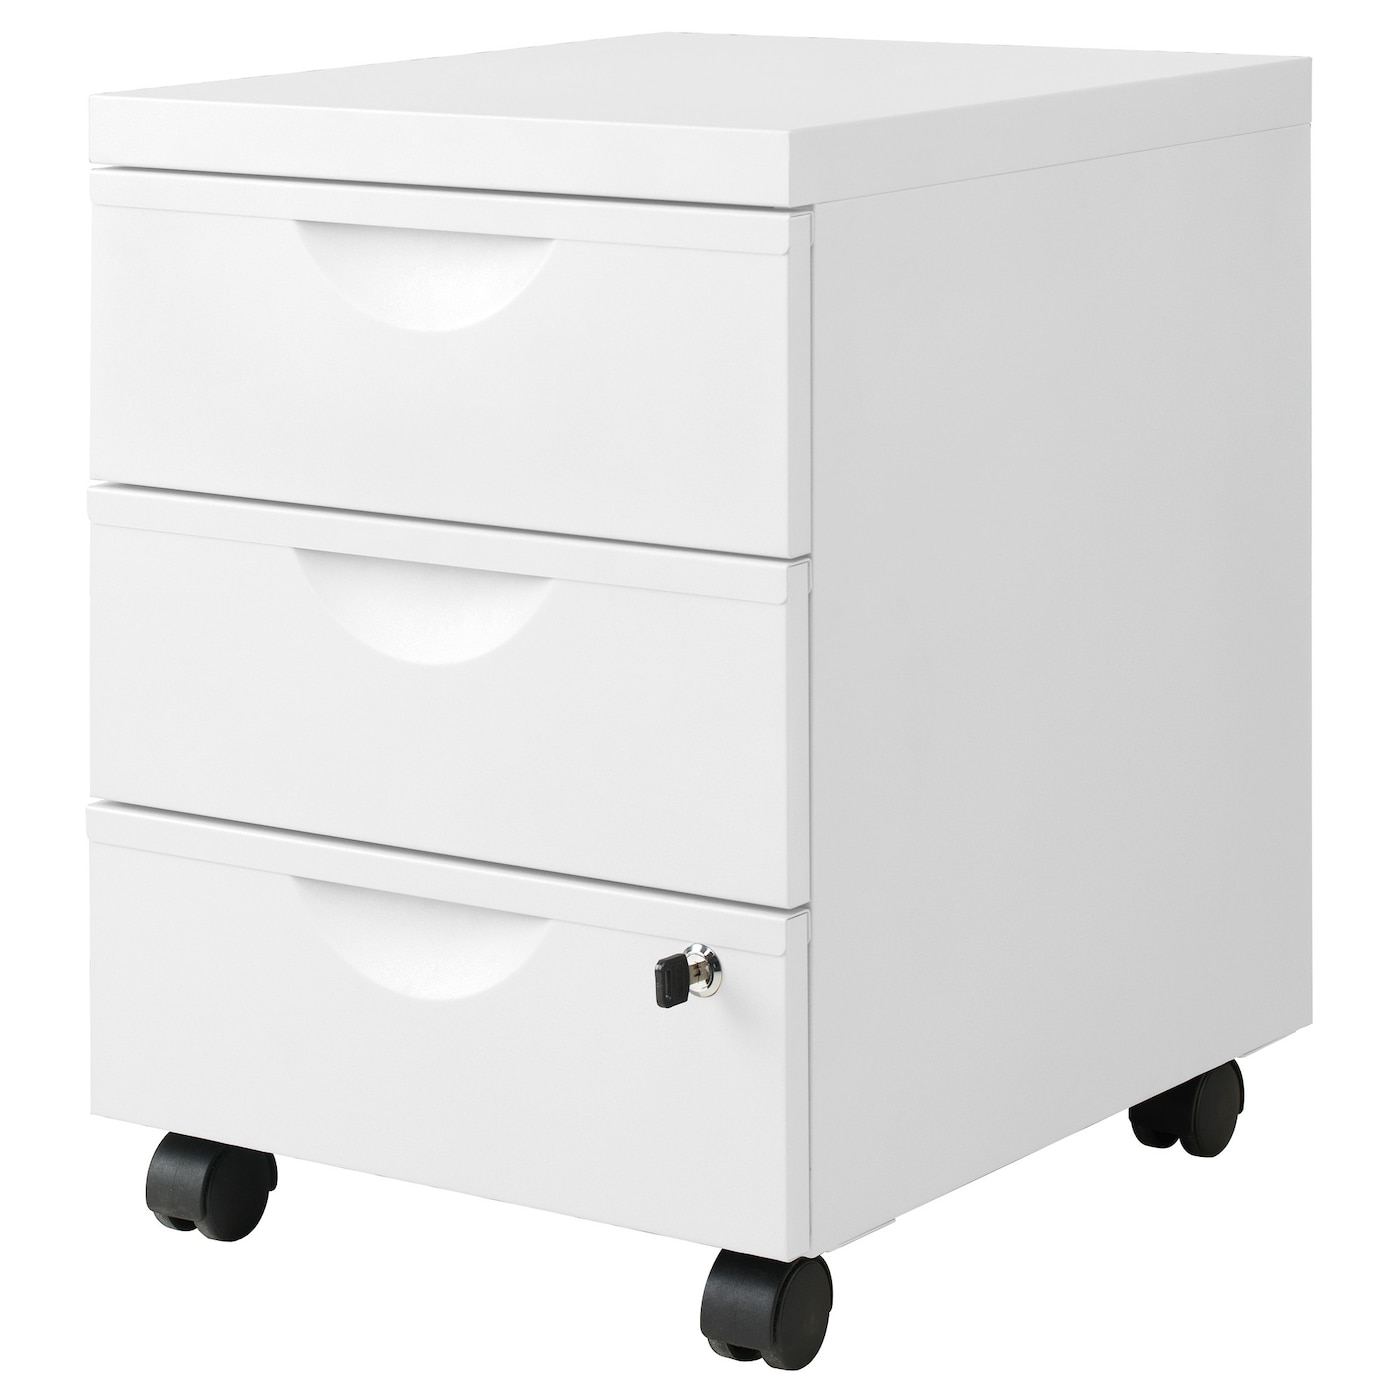 IKEA ERIK drawer unit w 3 drawers on castors Easy to move where it is needed thanks to castors.